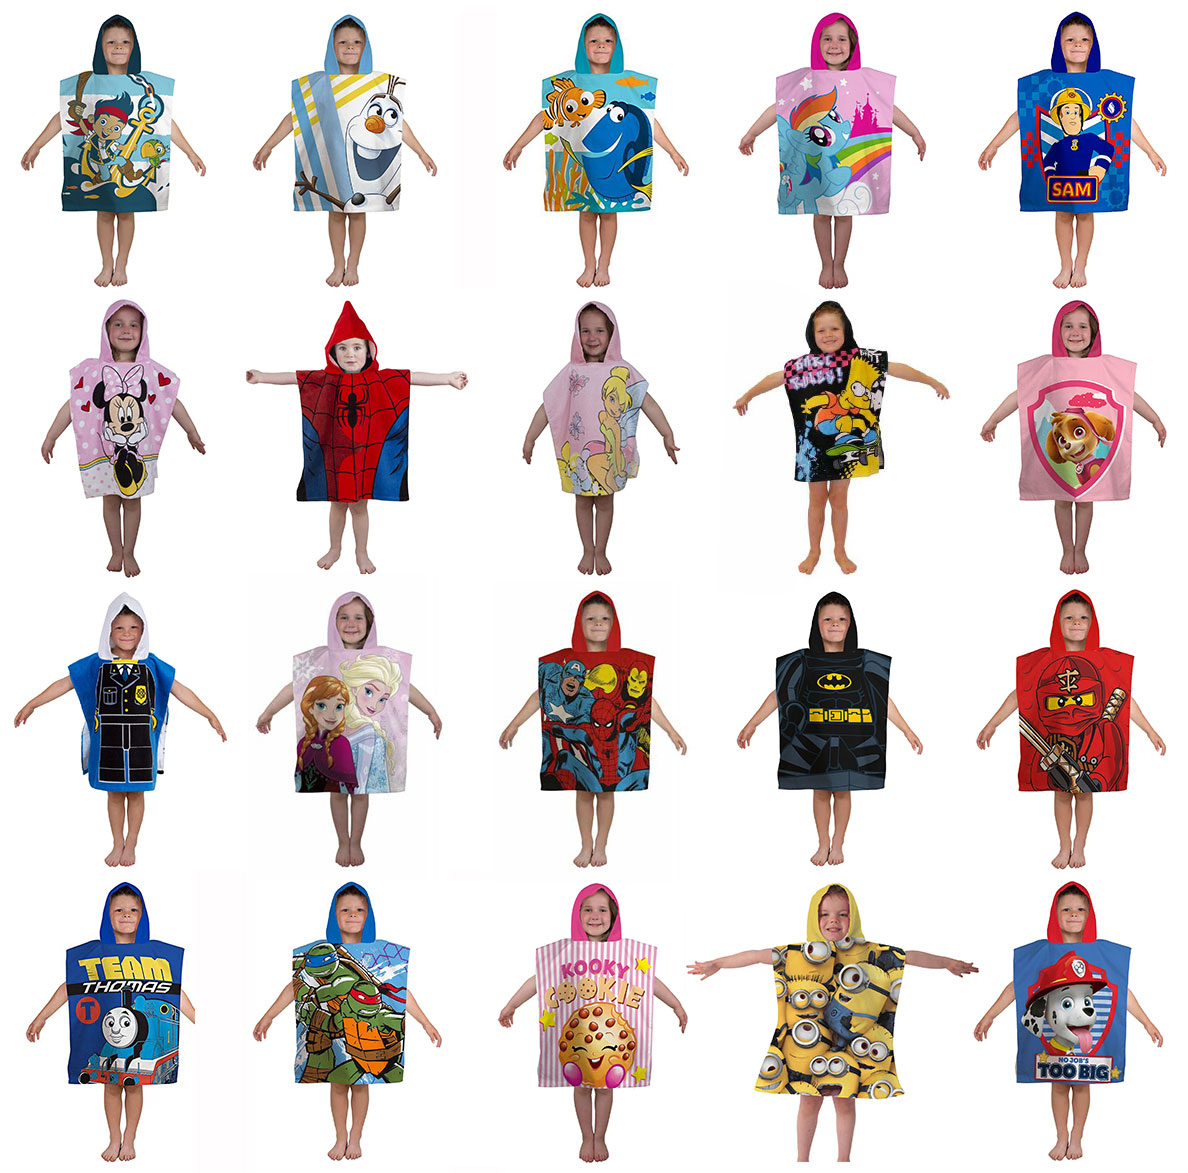 Figurine clipart hooded Hooded Hooded Childrens Ponchos Childrens